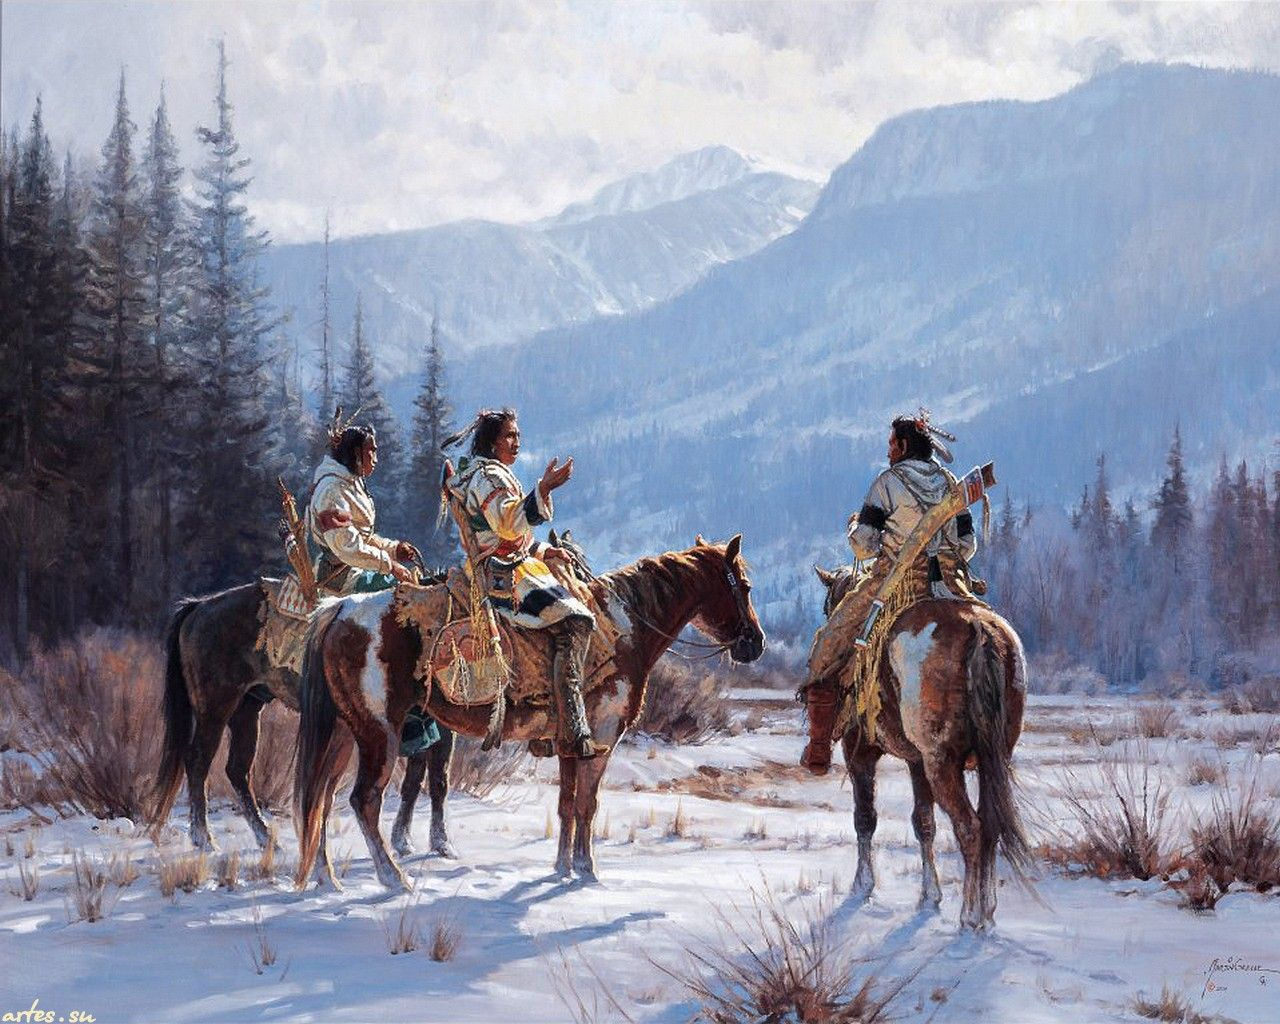 Image detail for -... Martin Grelle festménye, Martin Grelle festménye,, ,,,, Martin